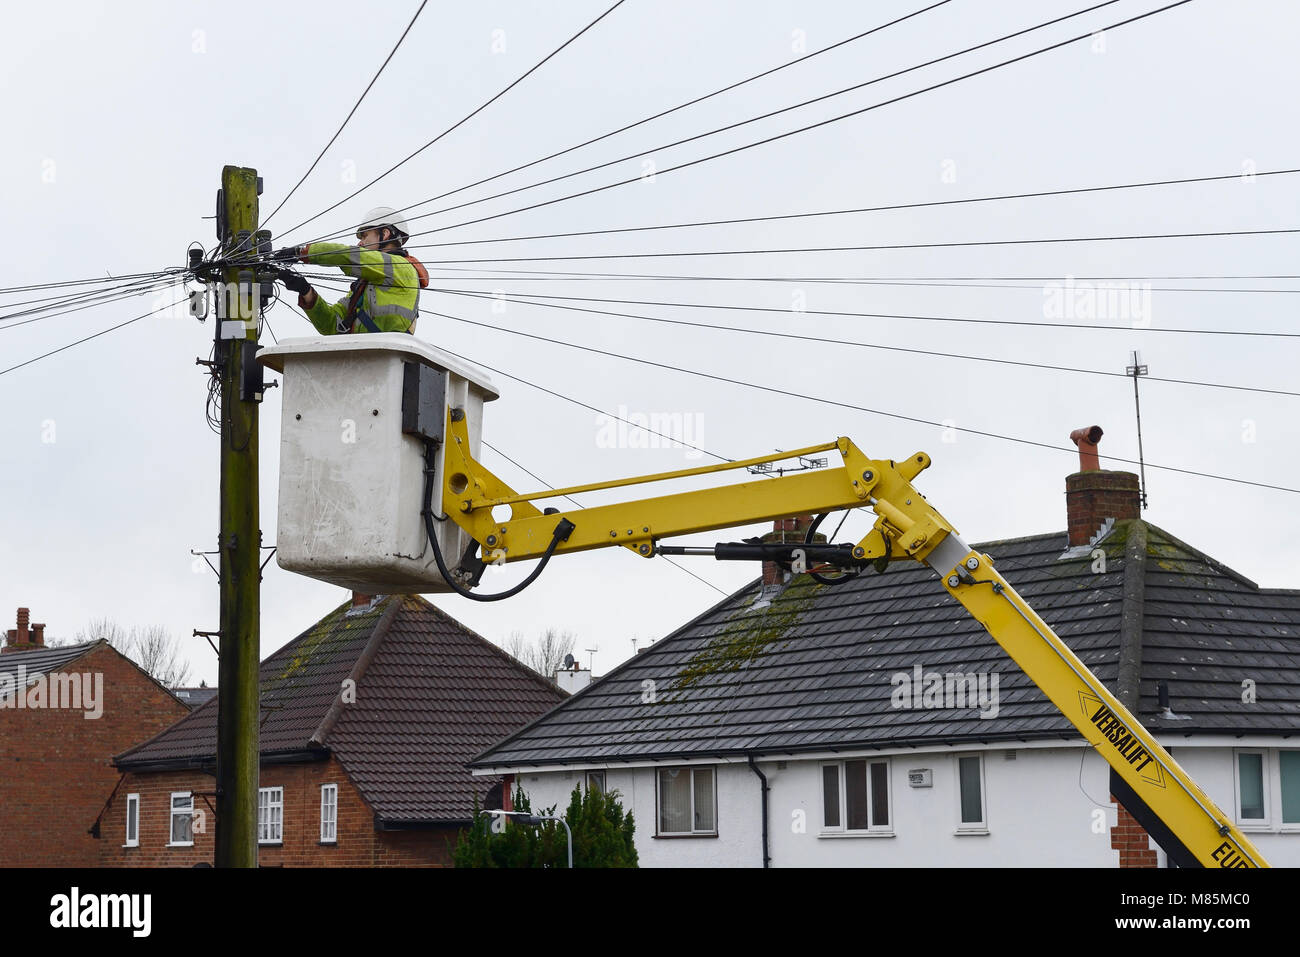 A BT Openreach engineer working on telephone cables from a cherry picker - Stock Image